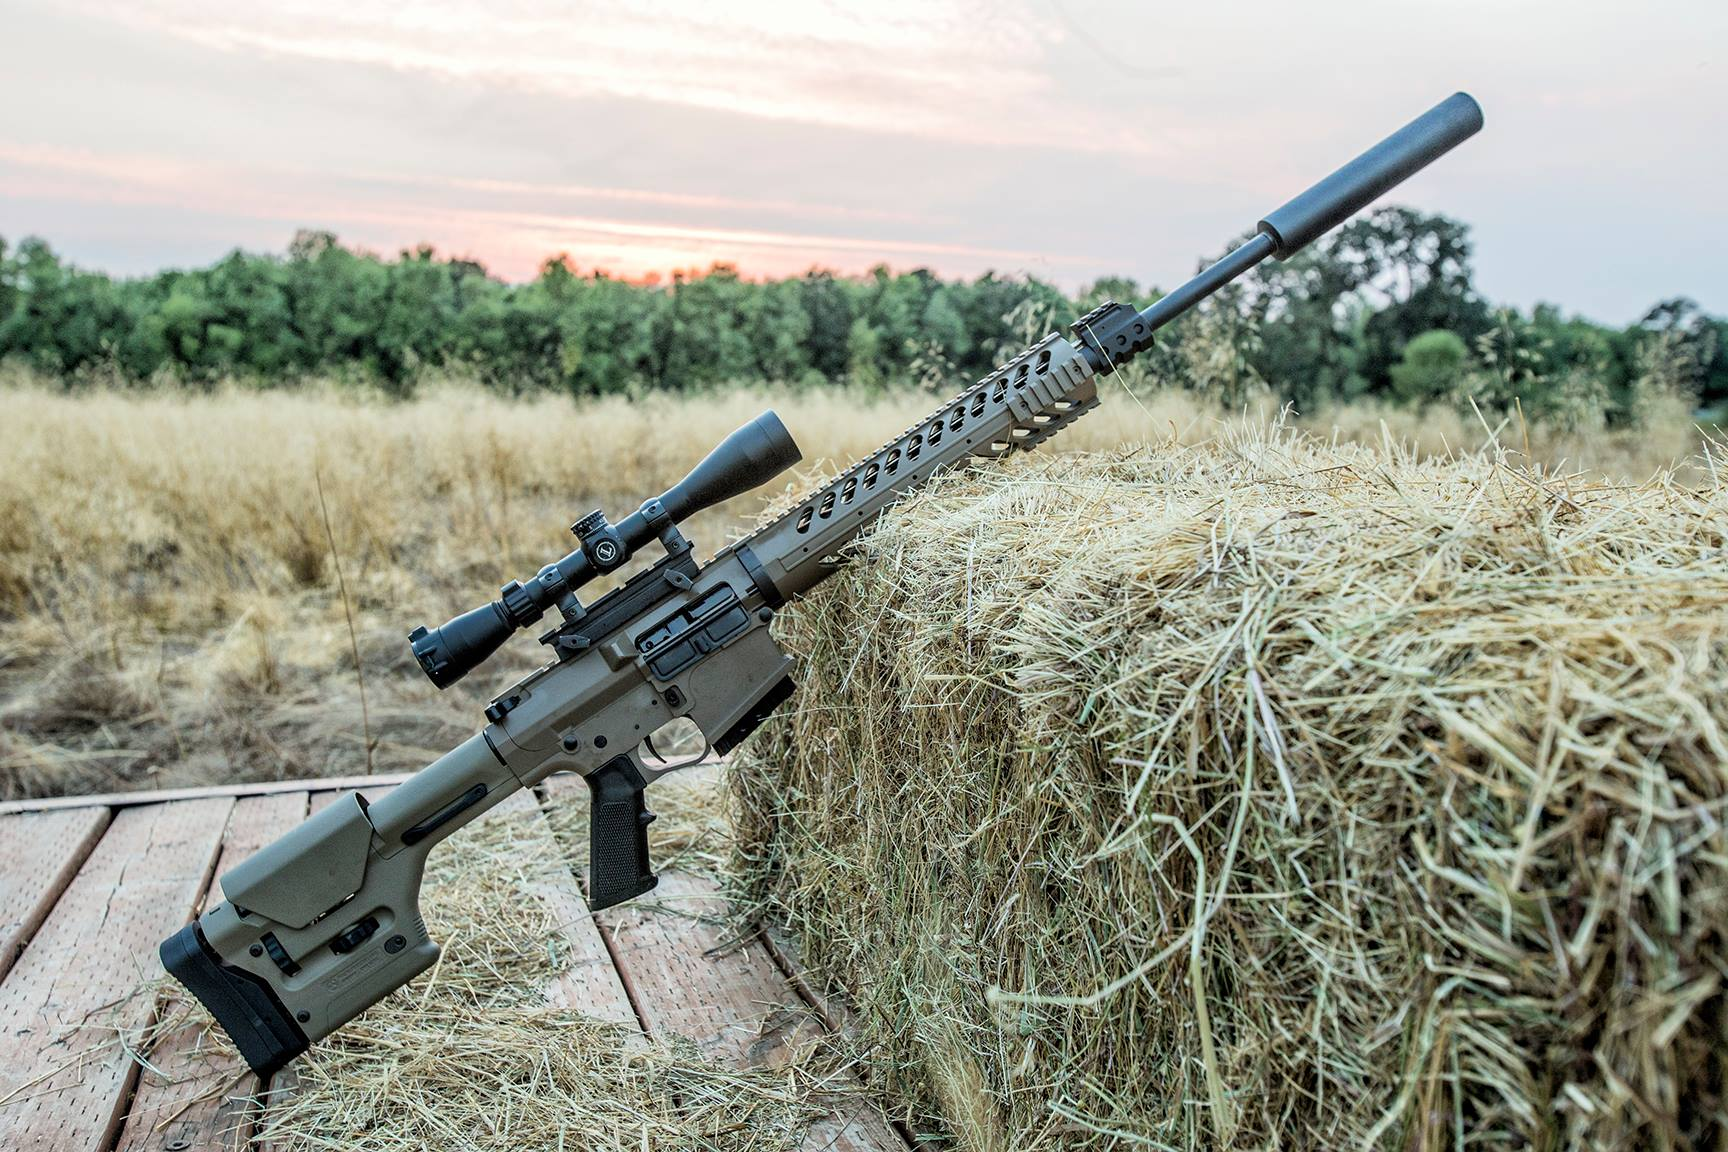 Hunting with Suppressors Now Legal in Michigan